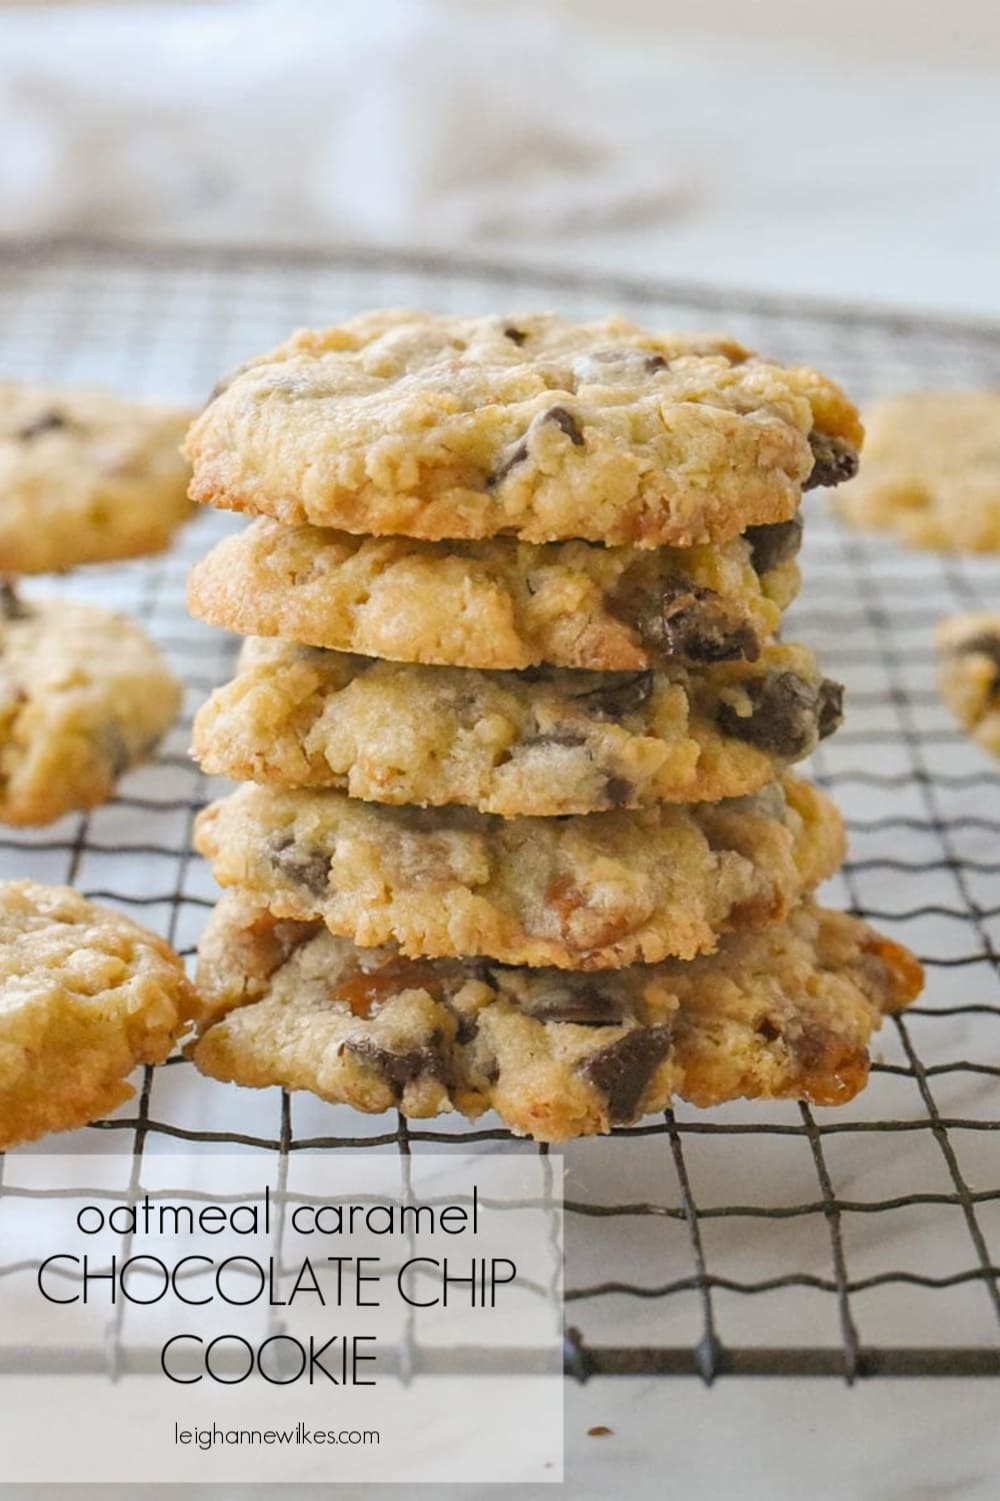 stack of oatmeal caramel chocolate chip cookies